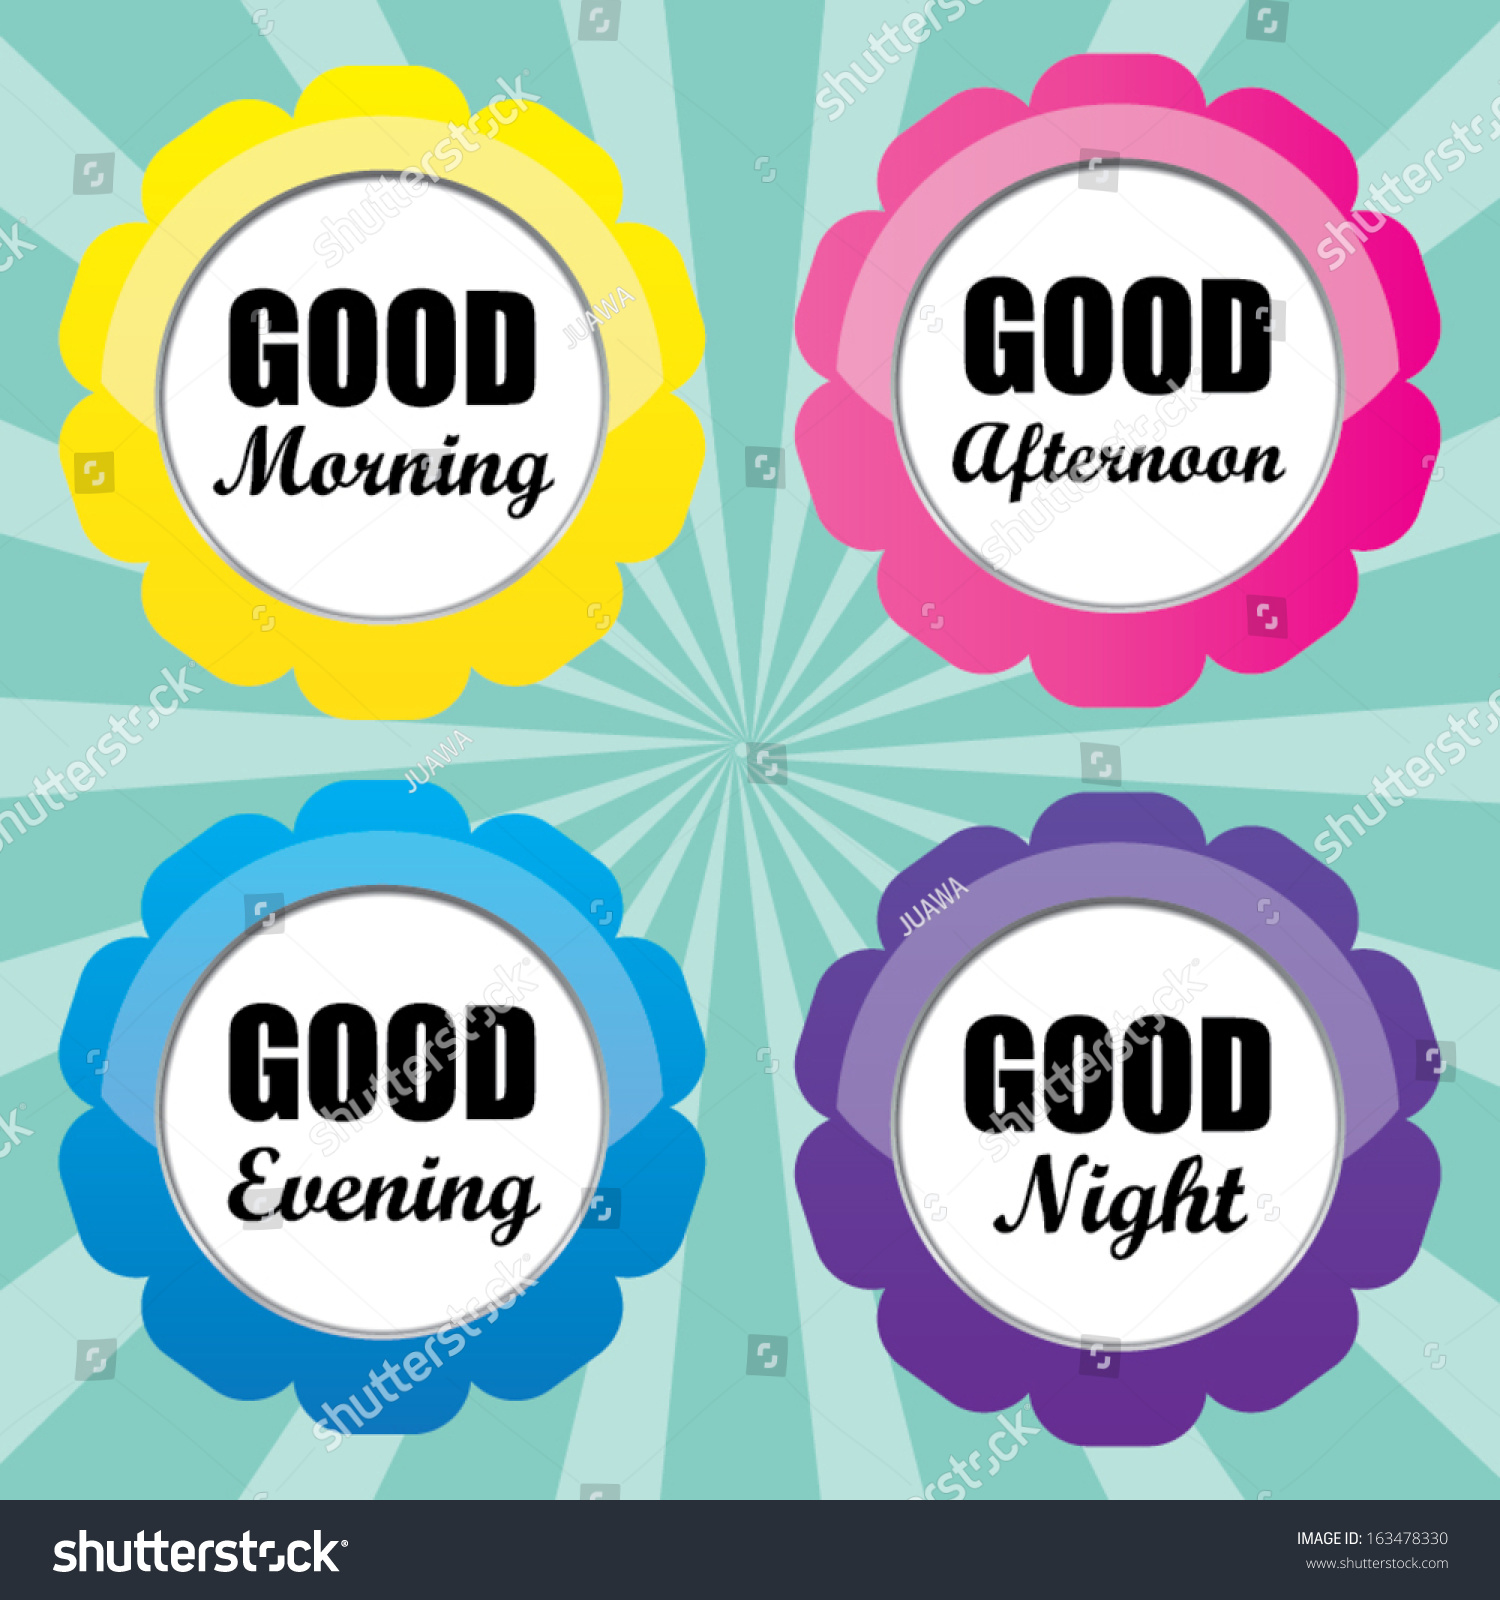 Good Morning Good Afternoon Good Evening Stock Vector